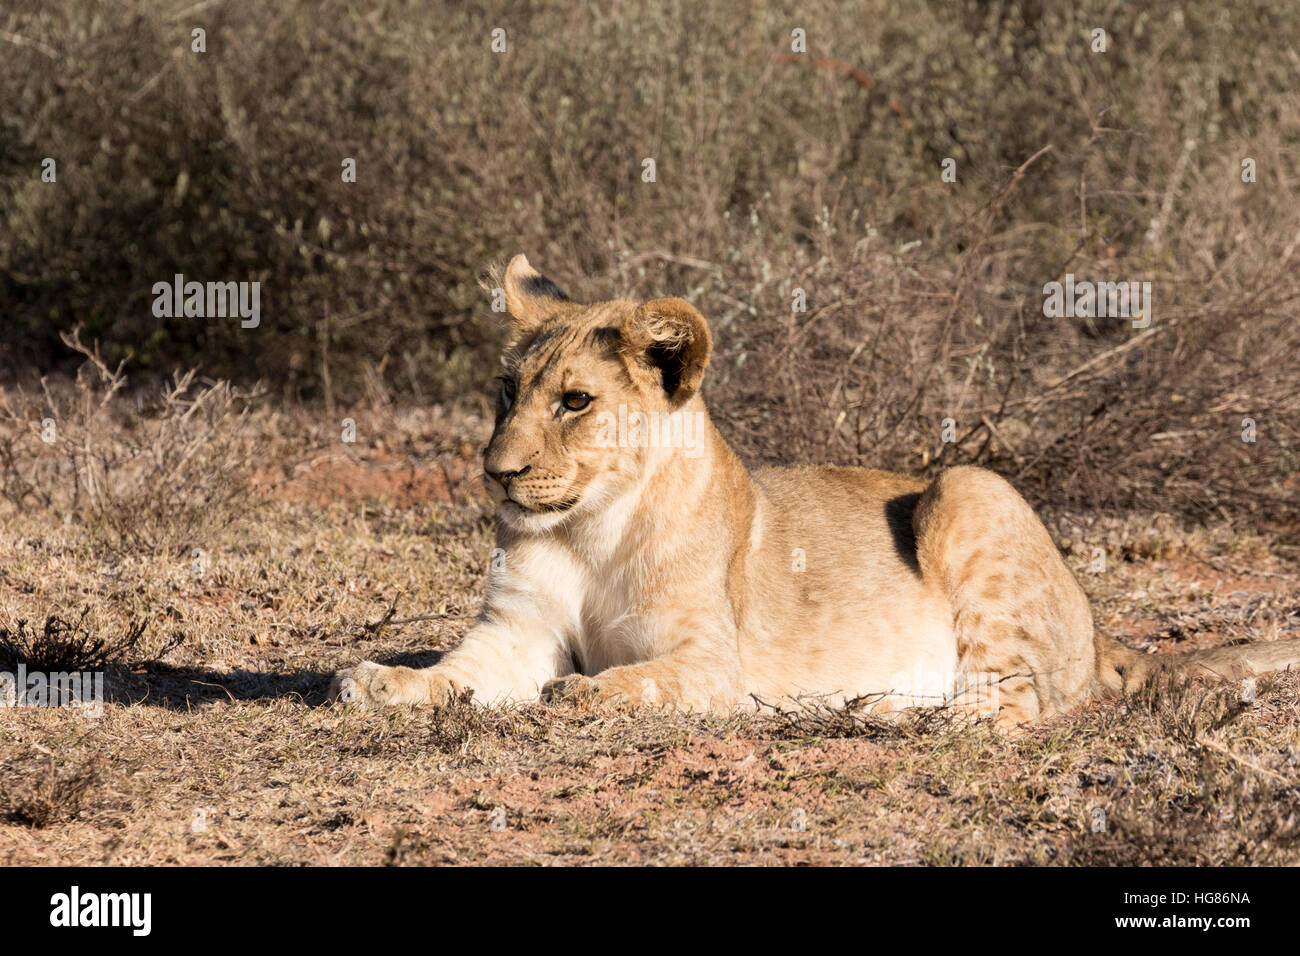 Lion cub ( Panthera Leo ), four months old, South Africa - Stock Image